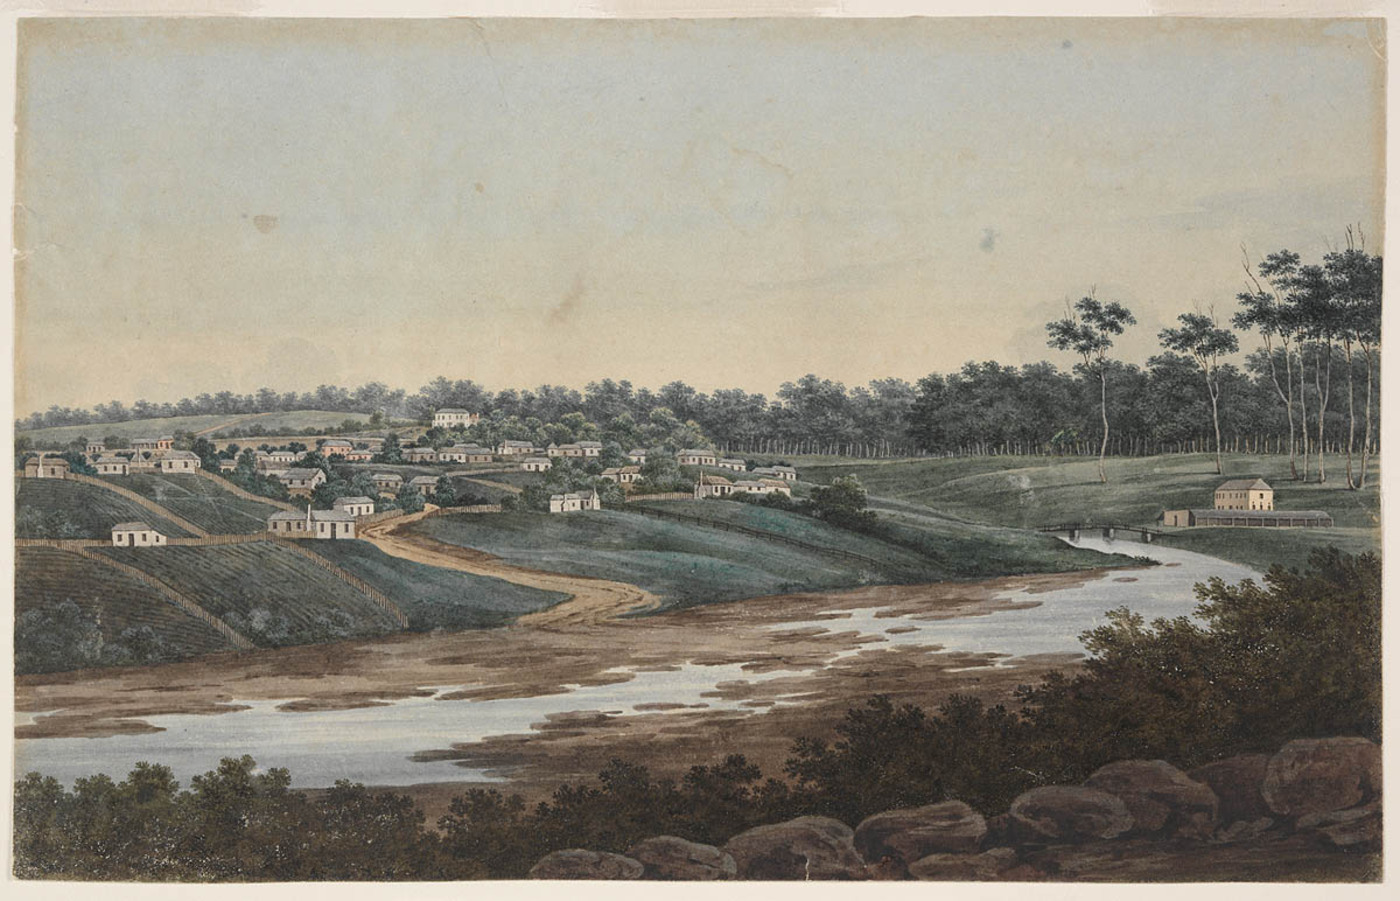 A view of Port Jackson, New South Wales, Parramatta, Factory Above the Gaol, Parramatta Gaol, Parramatta Female Factory, St. John's Cemetery Project, Old Parramattans, D'Arcy Wentworth, George William Evans